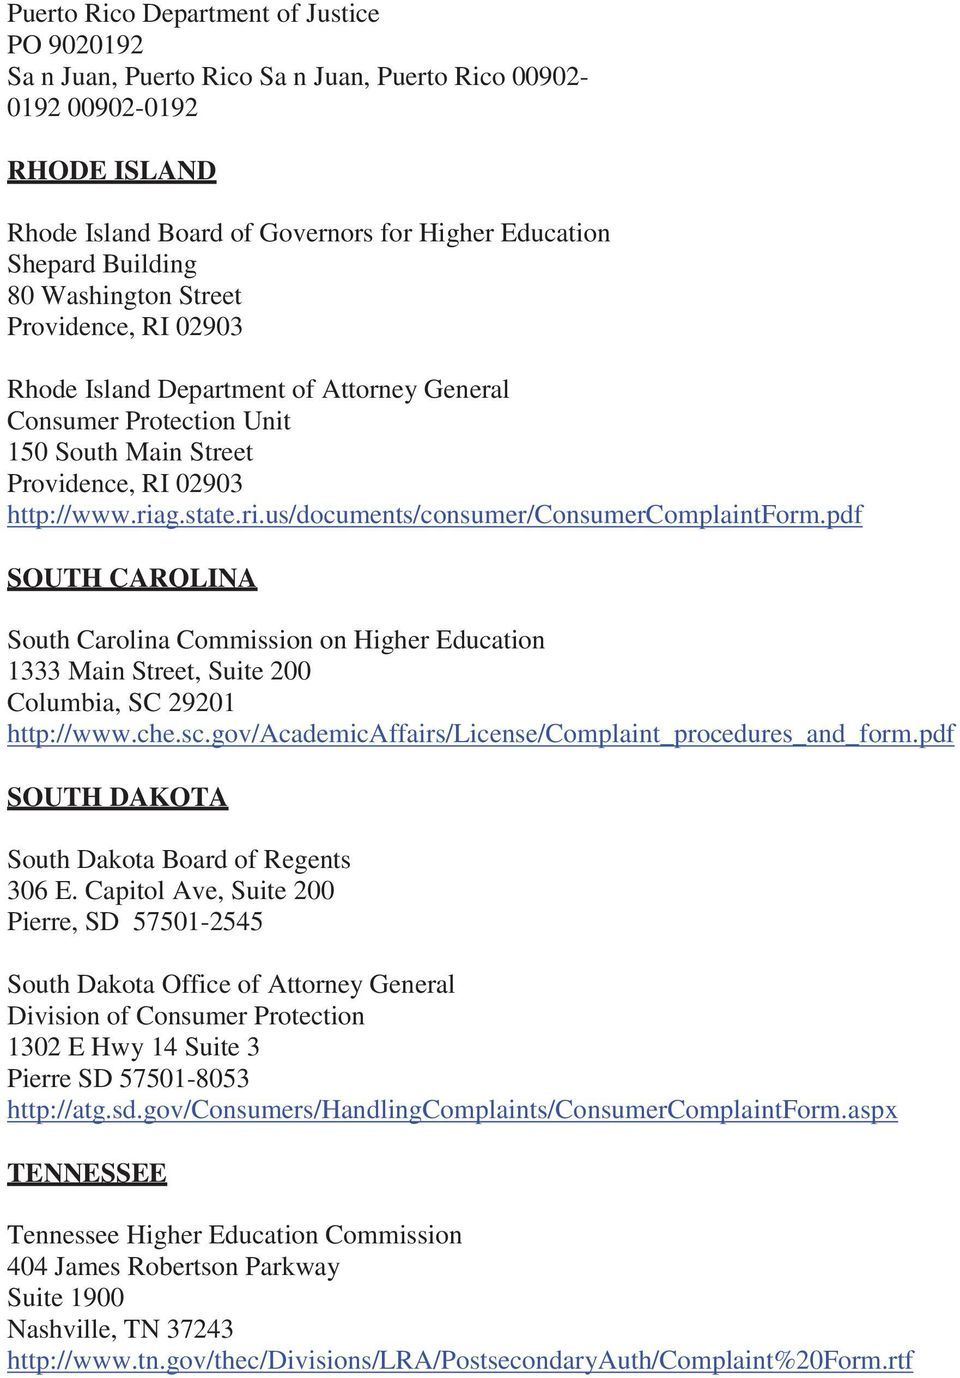 g.state.ri.us/documents/consumer/consumercomplaintform.pdf SOUTH CAROLINA South Carolina Commission on Higher Education 1333 Main Street, Suite 200 Columbia, SC 29201 http://www.che.sc.